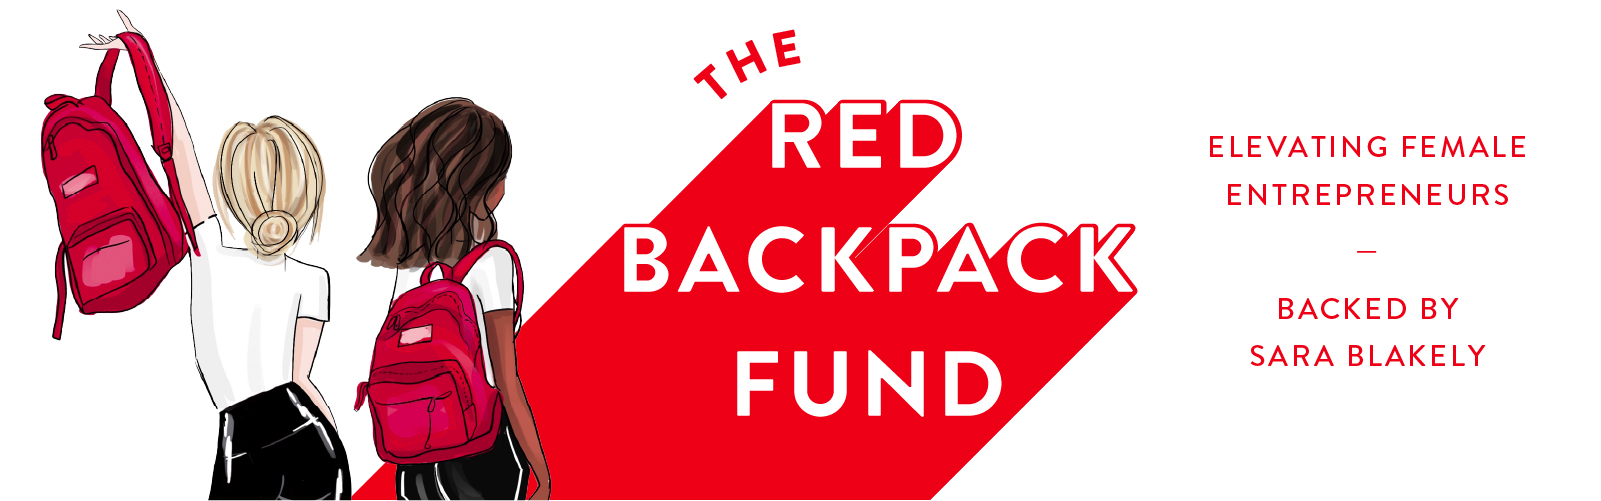 Spanx by Sara Blakely Red Backpack Fund